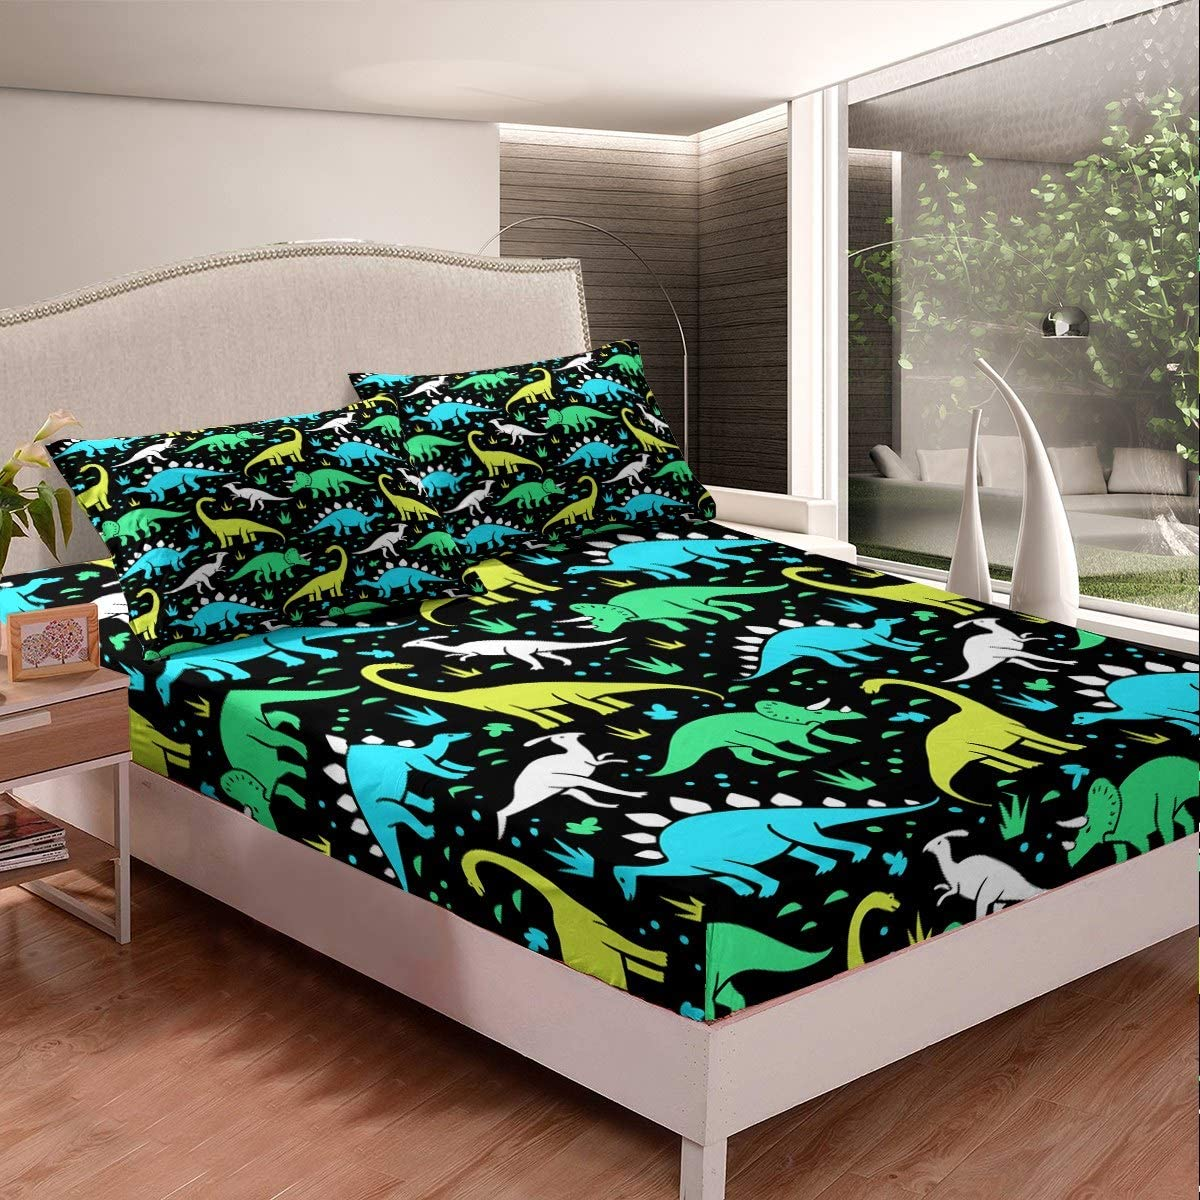 Horse Bedding Set Galloping Horses Printed Fitted Sheet for Kids Teens Adults Wild Animal Pattern Bed Sheet Set Breathable Wildlife Style Bed Cover Room Decor Twin Size